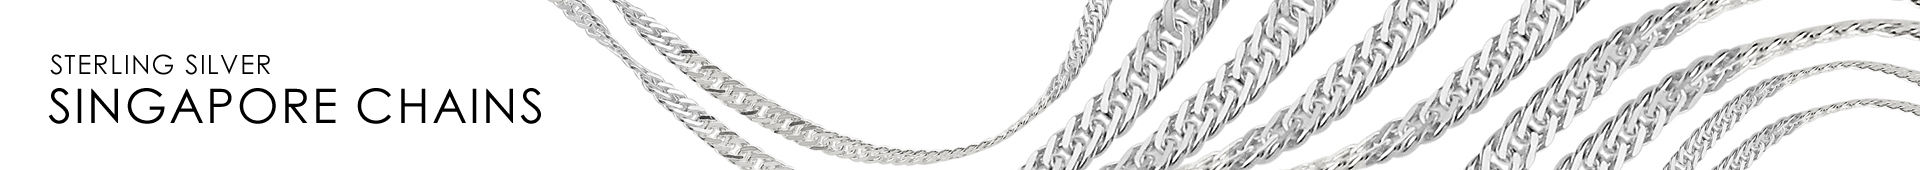 Sterling Silver Singapore Chain Horizontal Banner